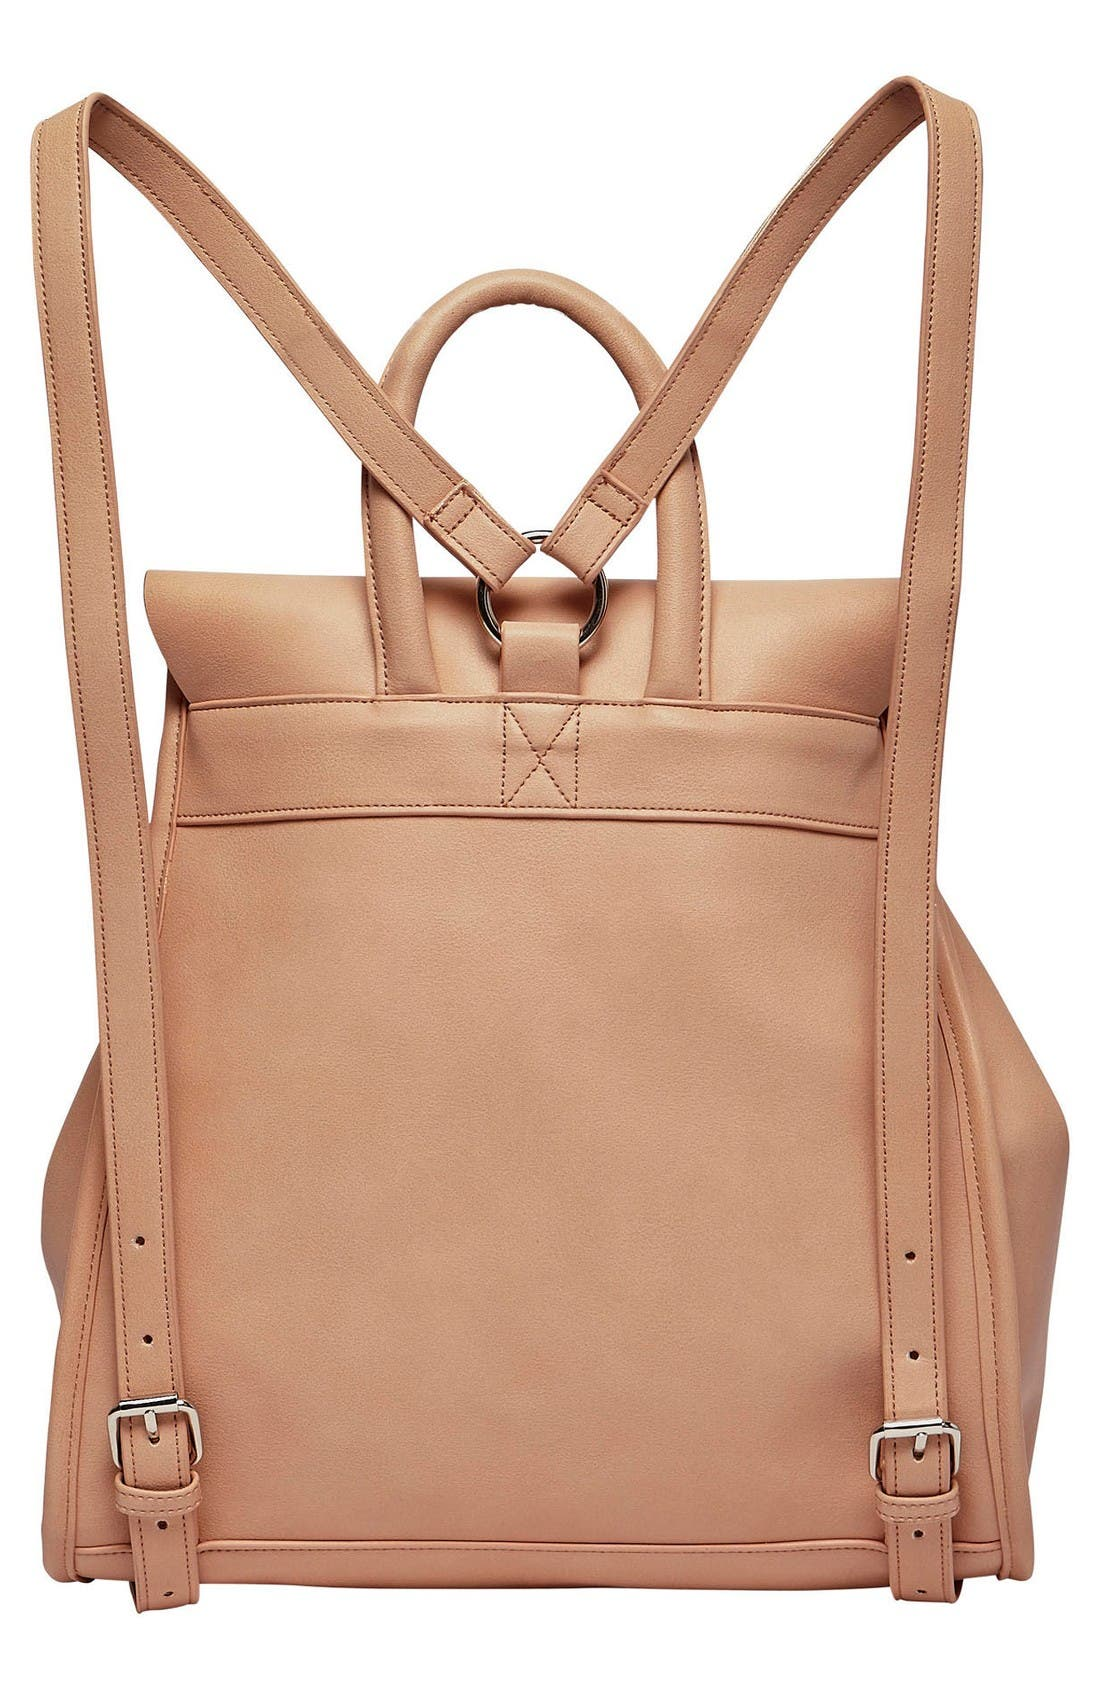 Midnight Vegan Leather Flap Backpack,                             Alternate thumbnail 2, color,                             Pink